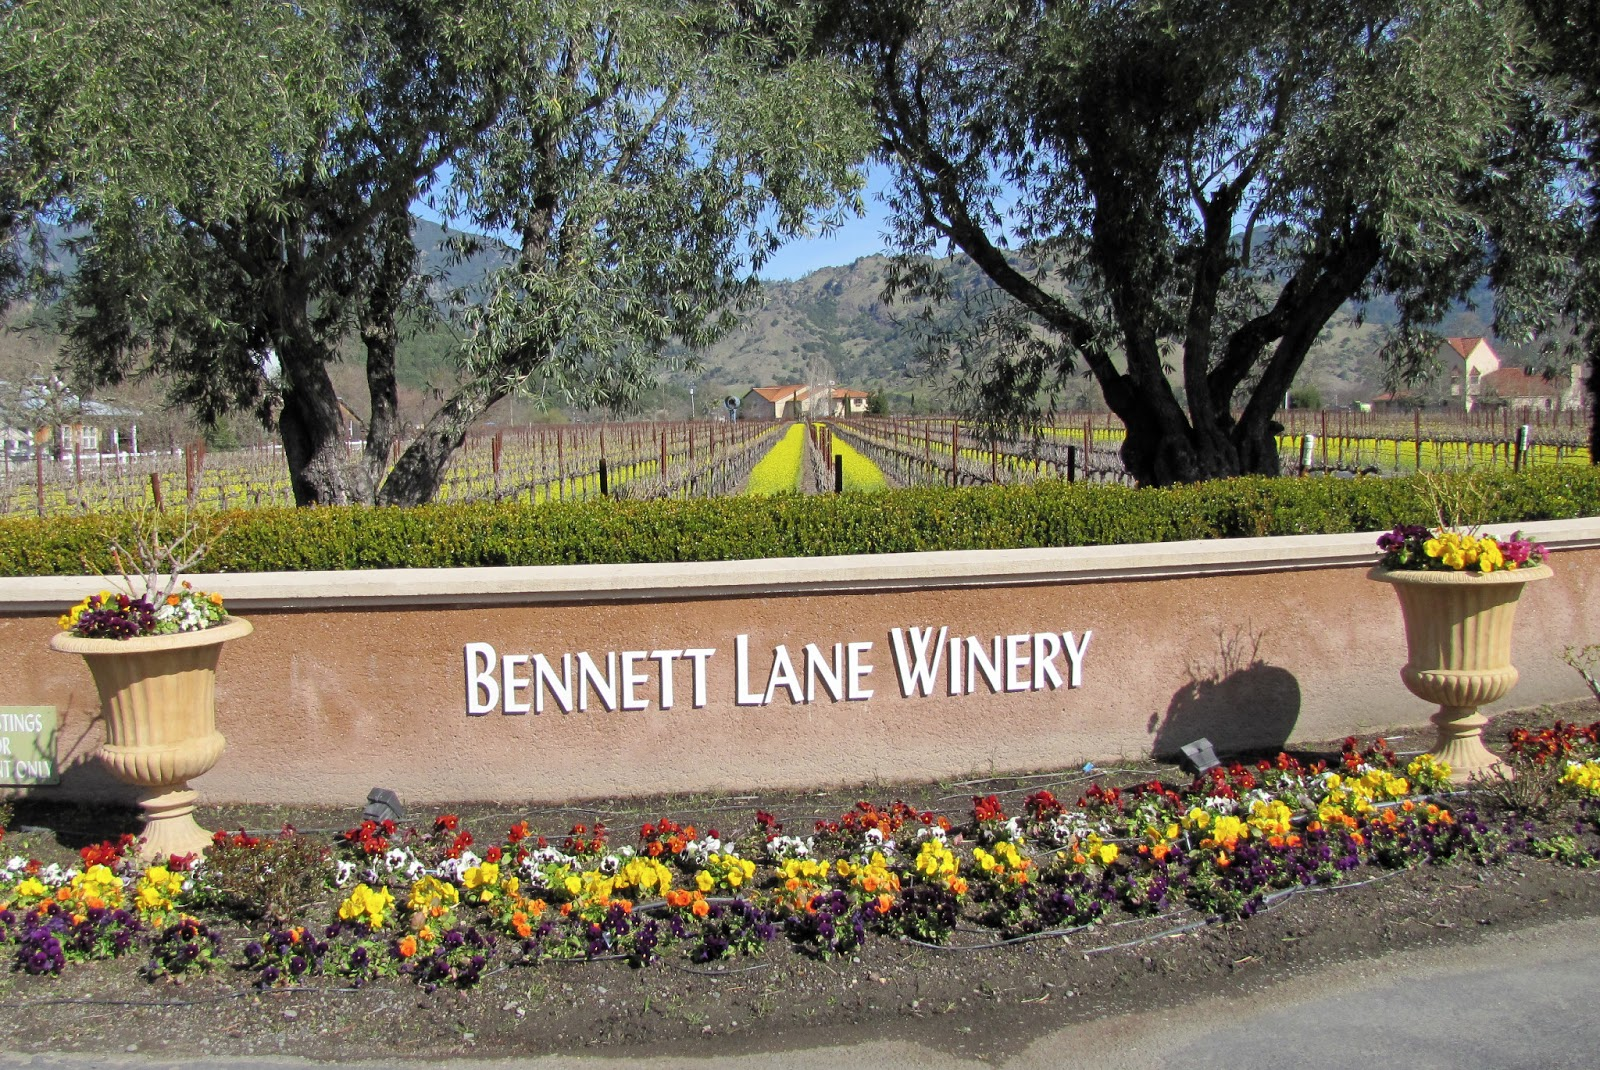 Bennett Lane Winery 1 - Erik Wait